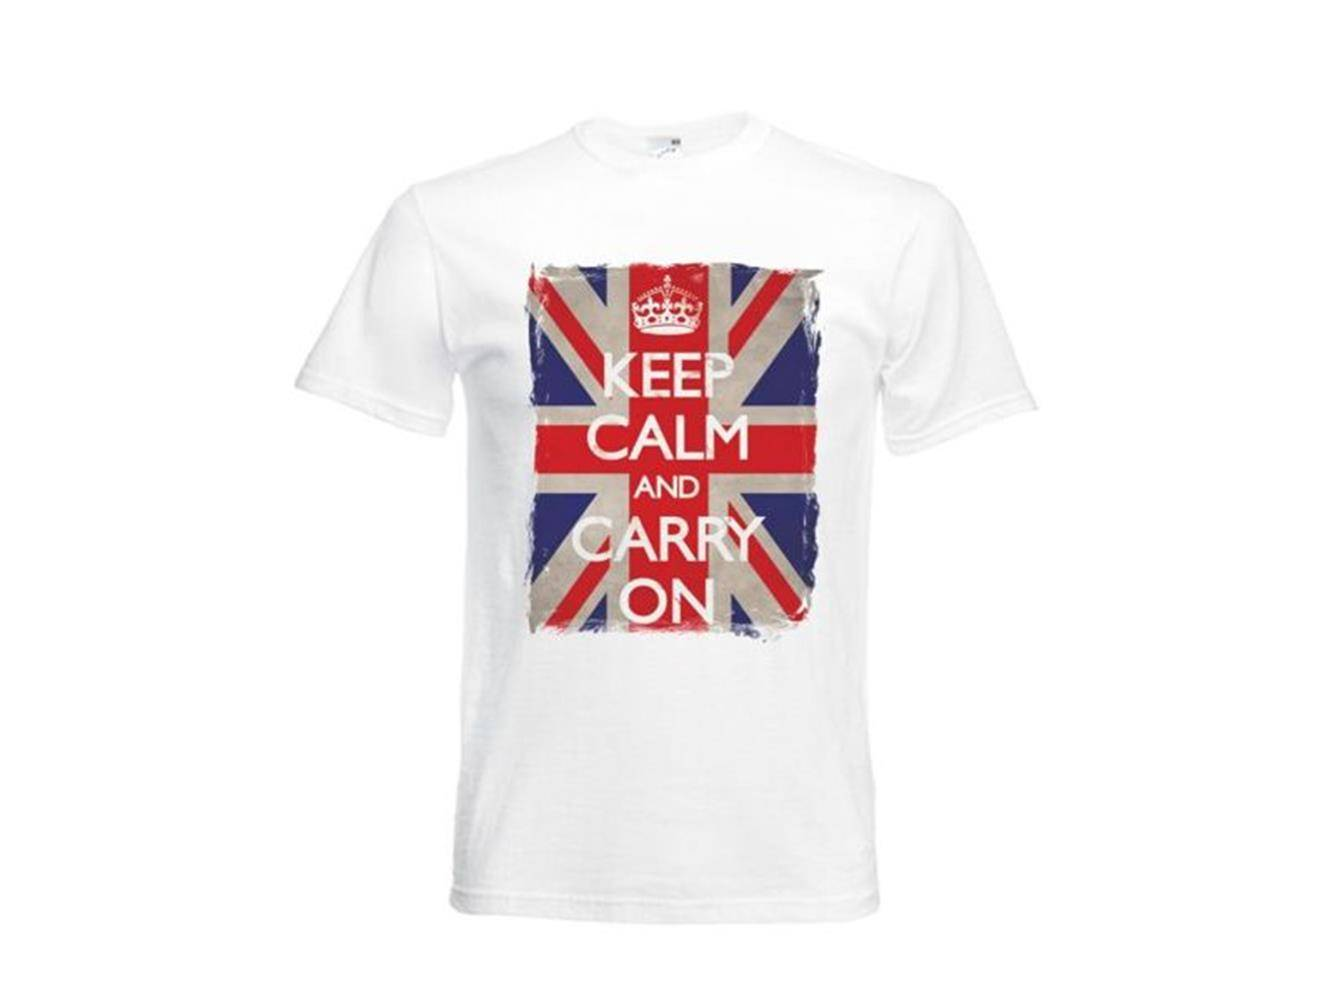 Atelier del Ricamo T-Shirt Uomo Stampa Keep Calm And Carry On